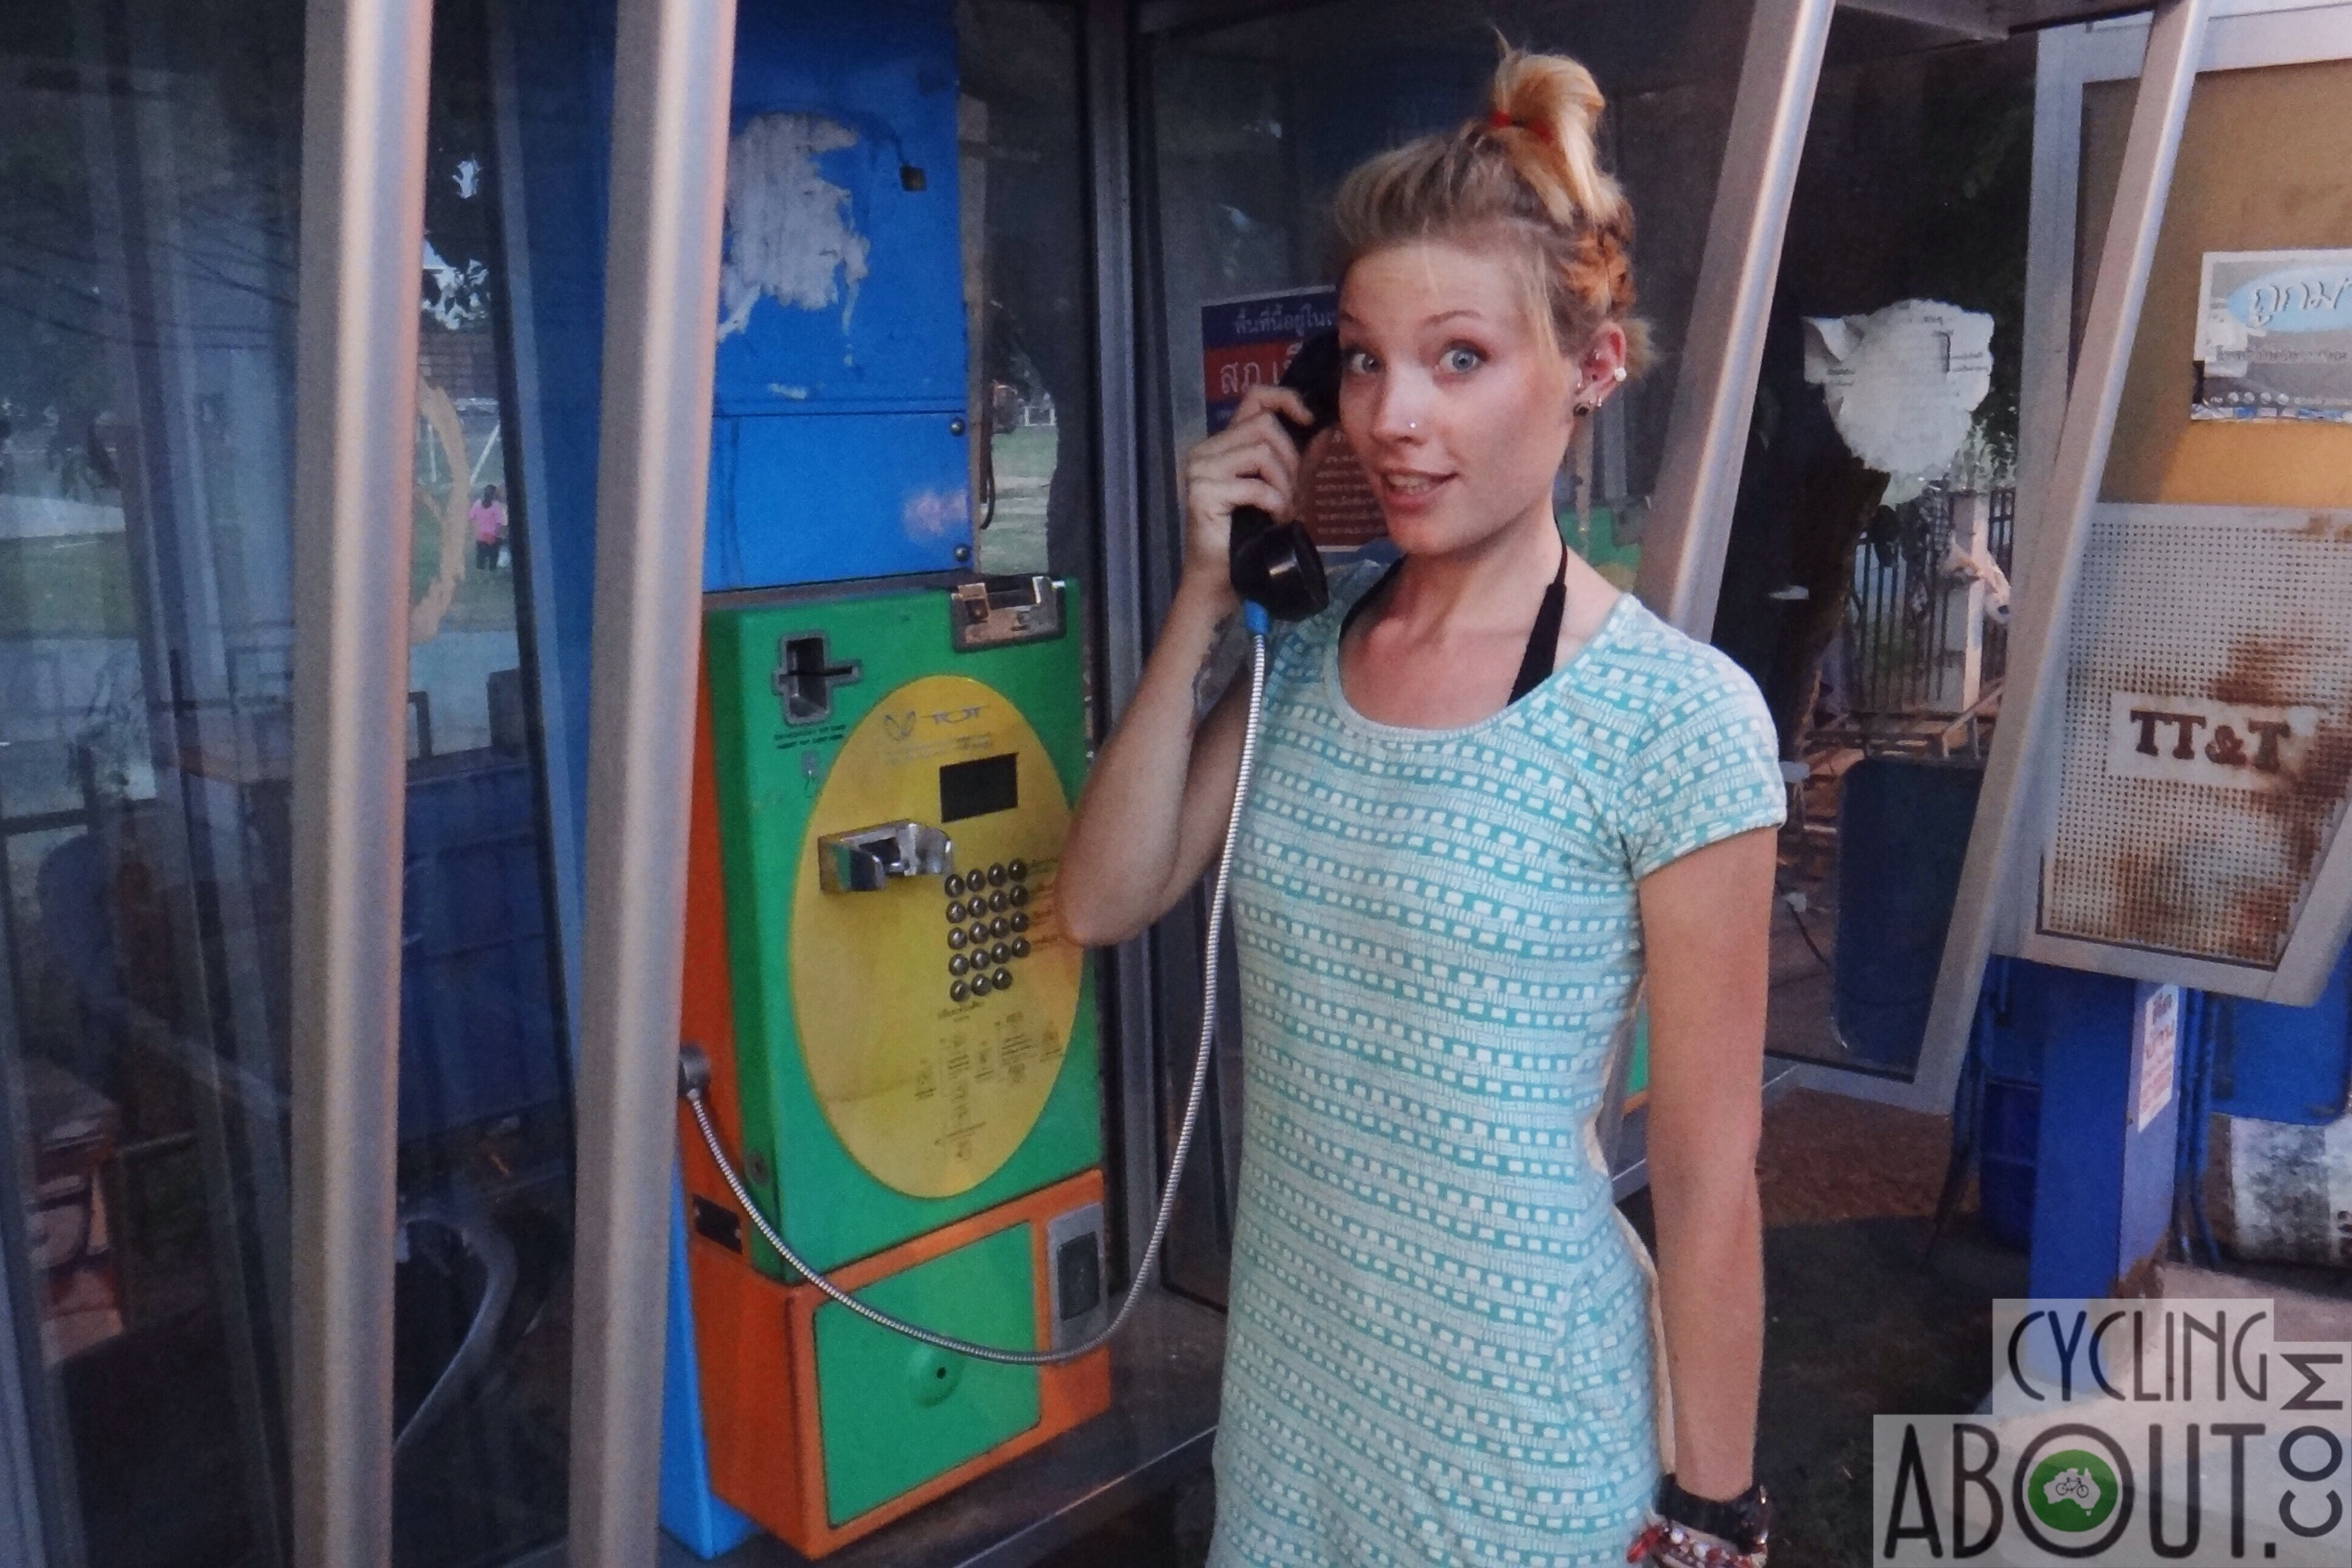 Alleykat_Kat phoning home from Thailand